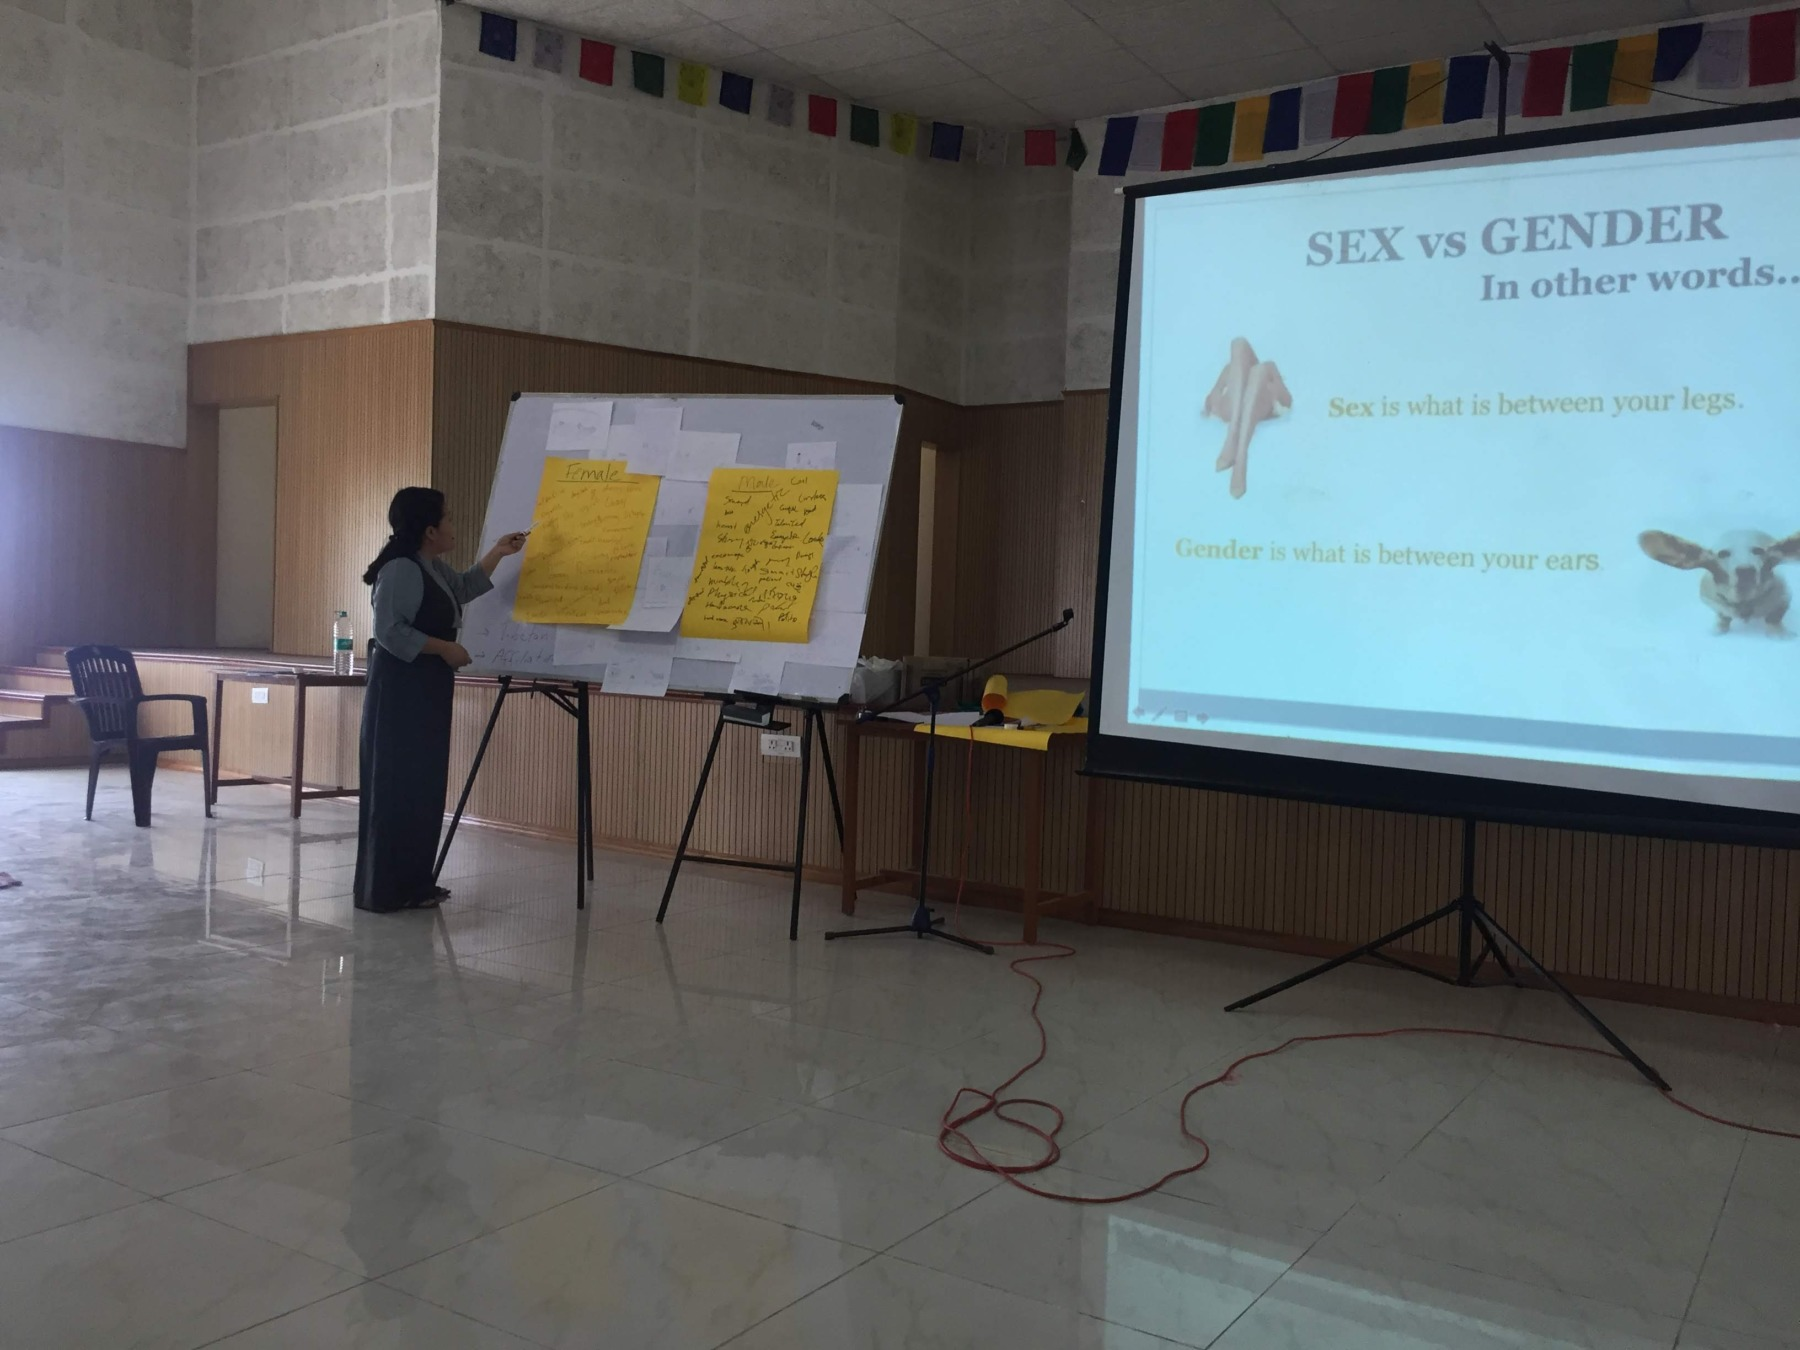 A woman conducting a Gender Education workshop. The screen in the background displays 'Sex versus Gender'